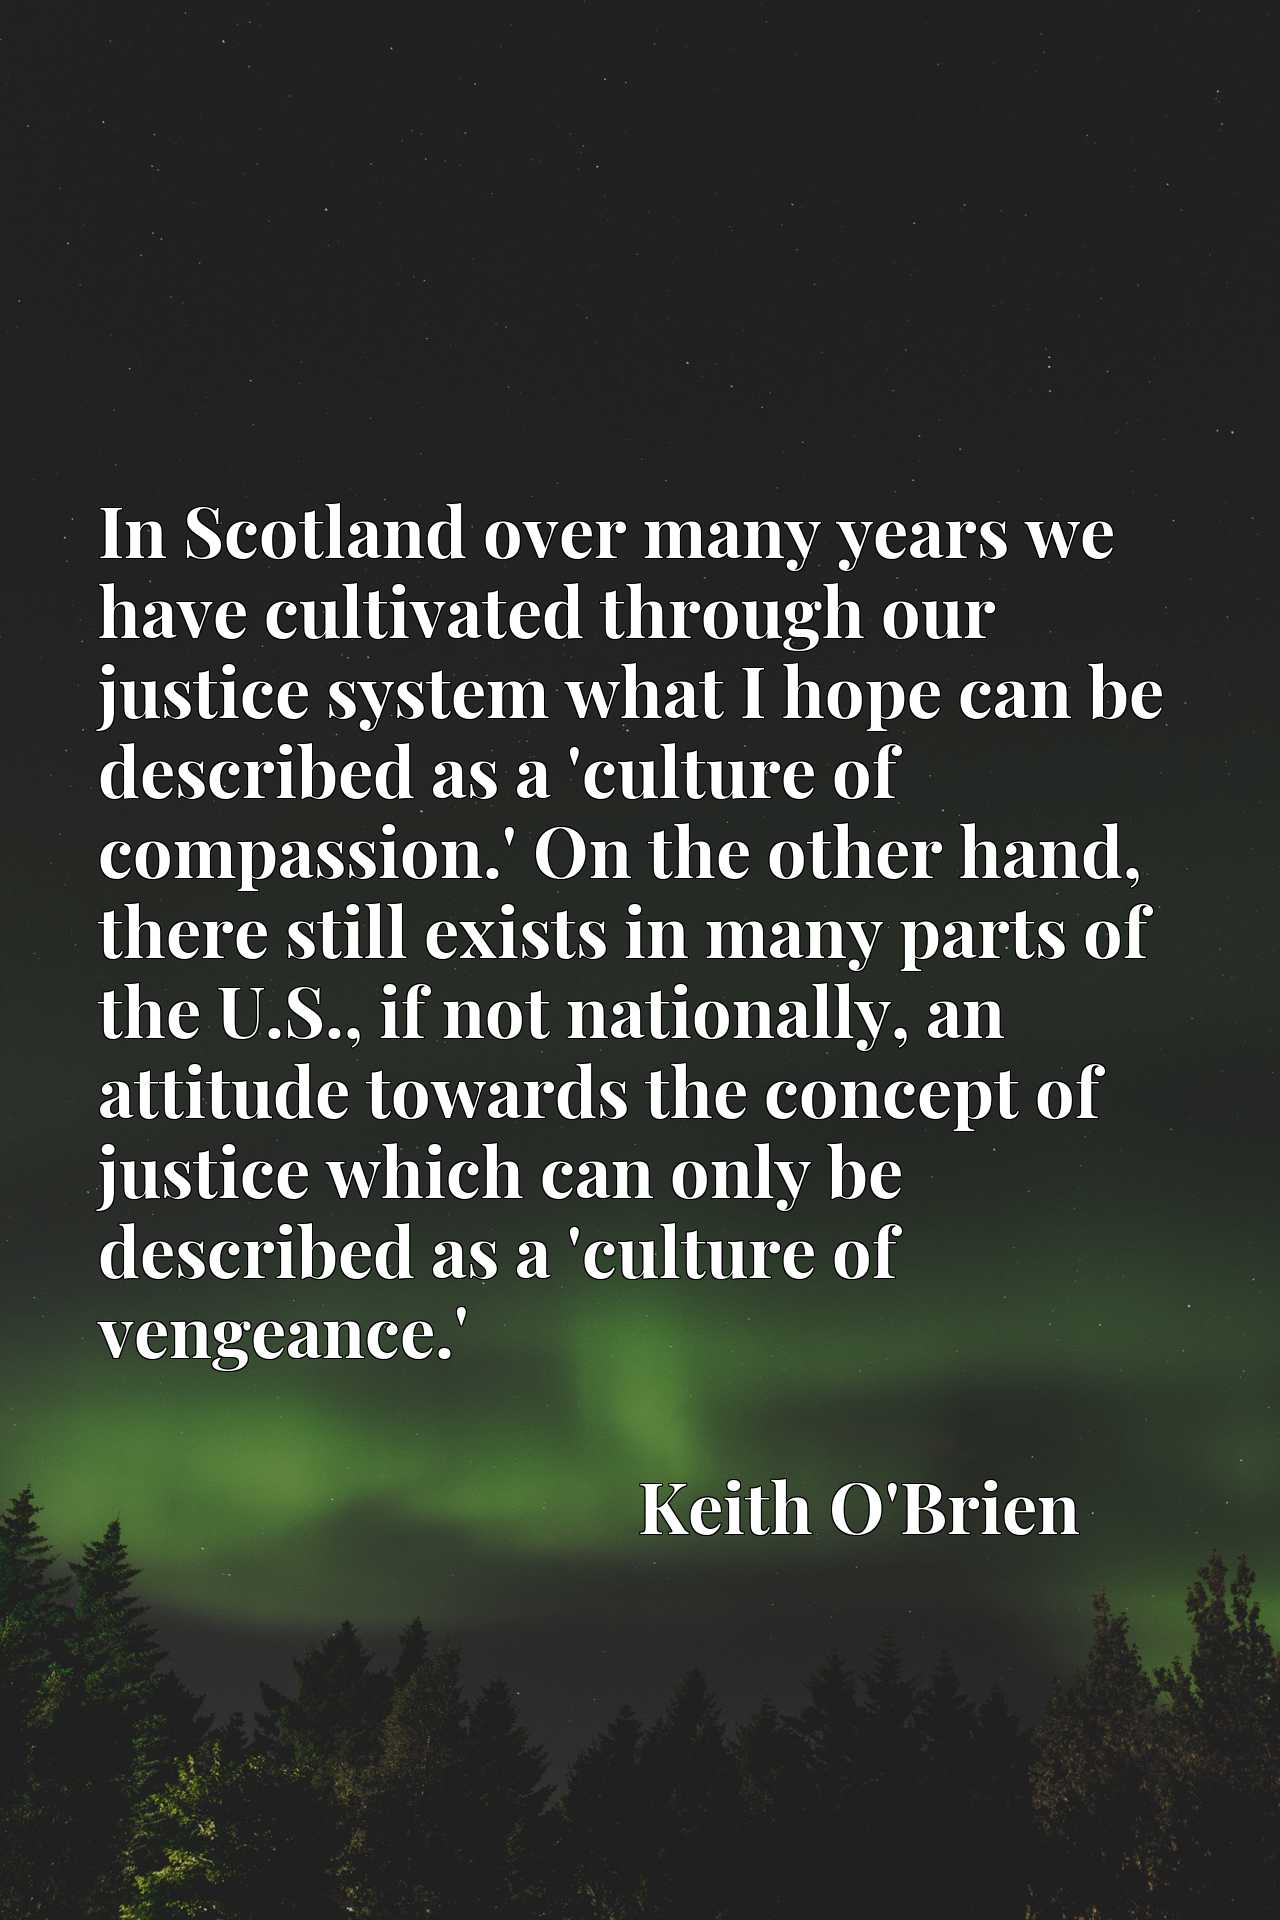 In Scotland over many years we have cultivated through our justice system what I hope can be described as a 'culture of compassion.' On the other hand, there still exists in many parts of the U.S., if not nationally, an attitude towards the concept of justice which can only be described as a 'culture of vengeance.'